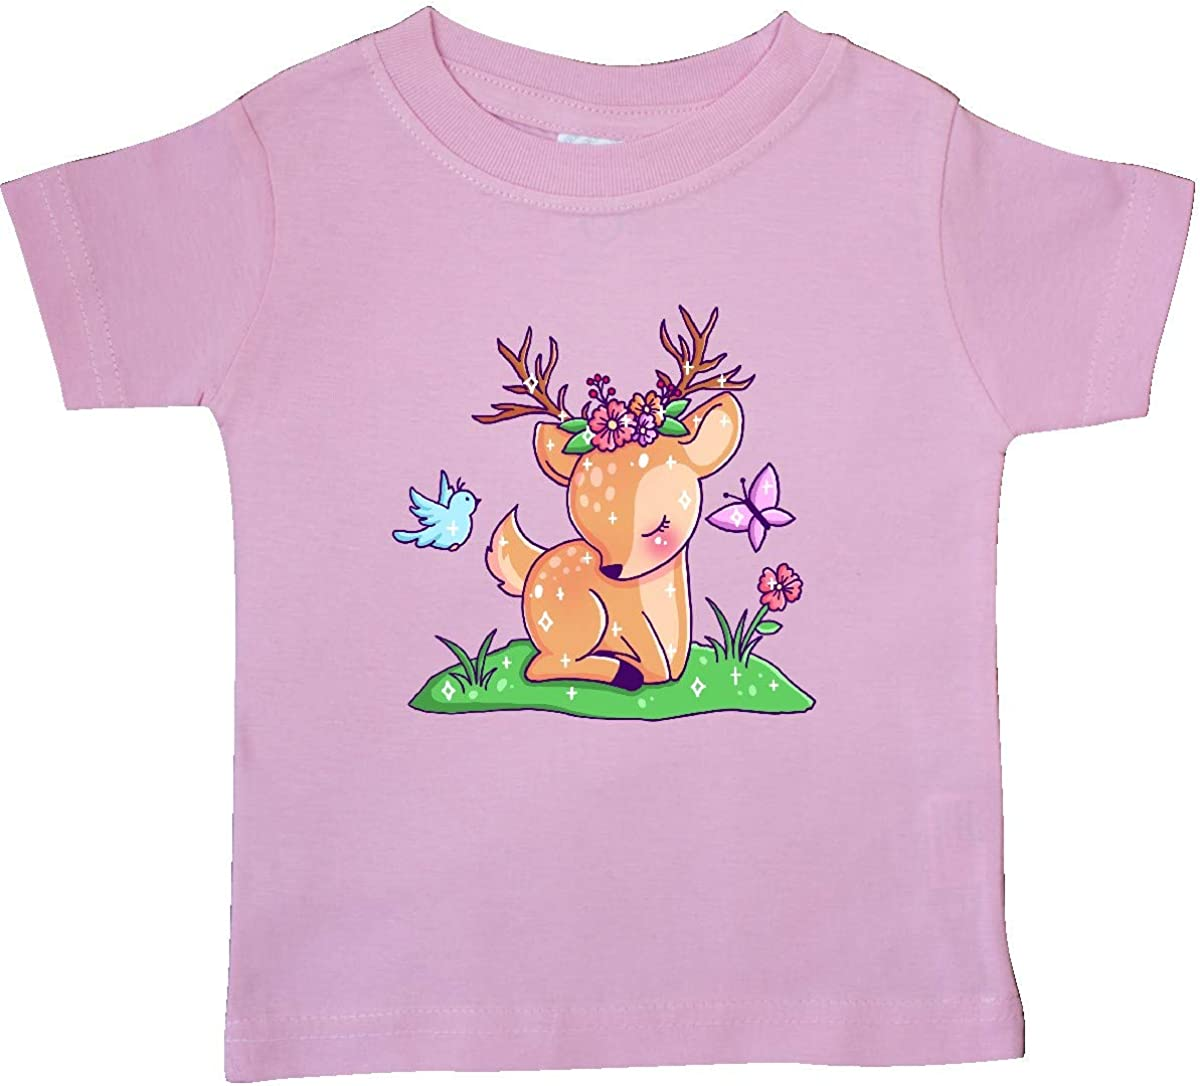 Bird and Baby T-Shirt 12 Months Pink inktastic Cute Baby Deer with Butterfly